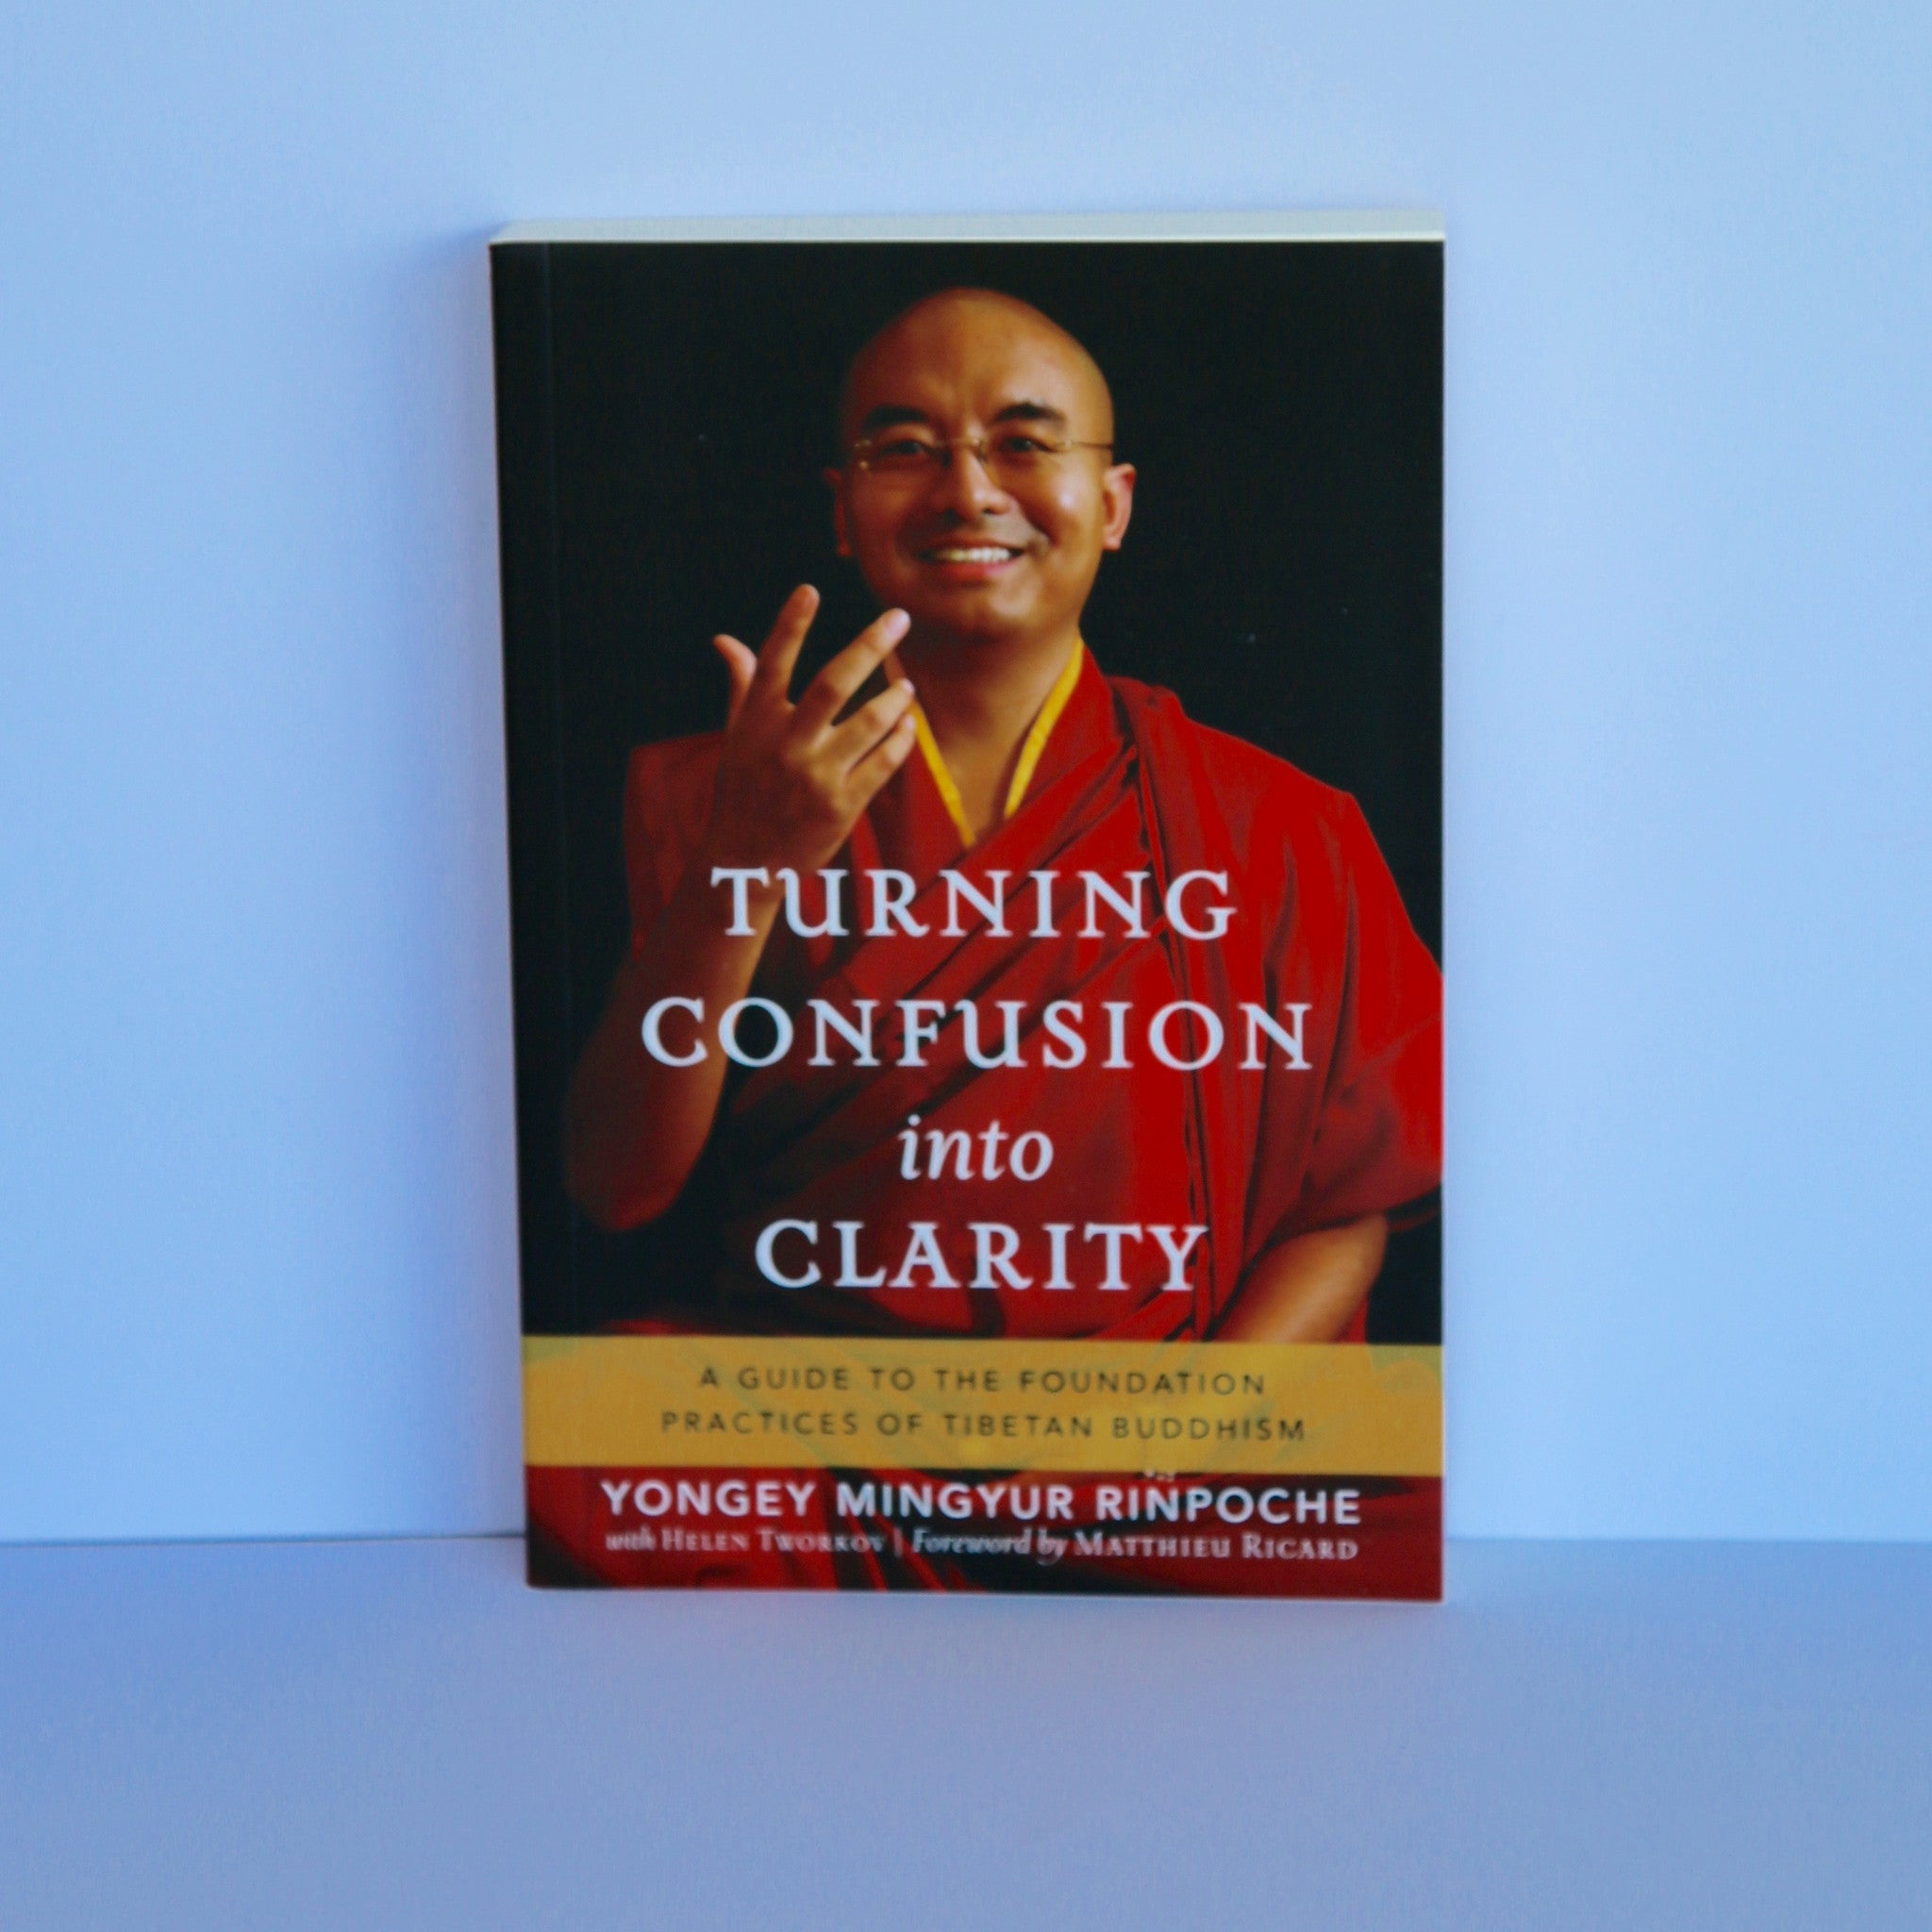 Turning Confusion into Clarity - A Guide to the Foundation Practices of Tibetan Buddhism by Yongey Mingyur Rinpoche with Helen Tworkov